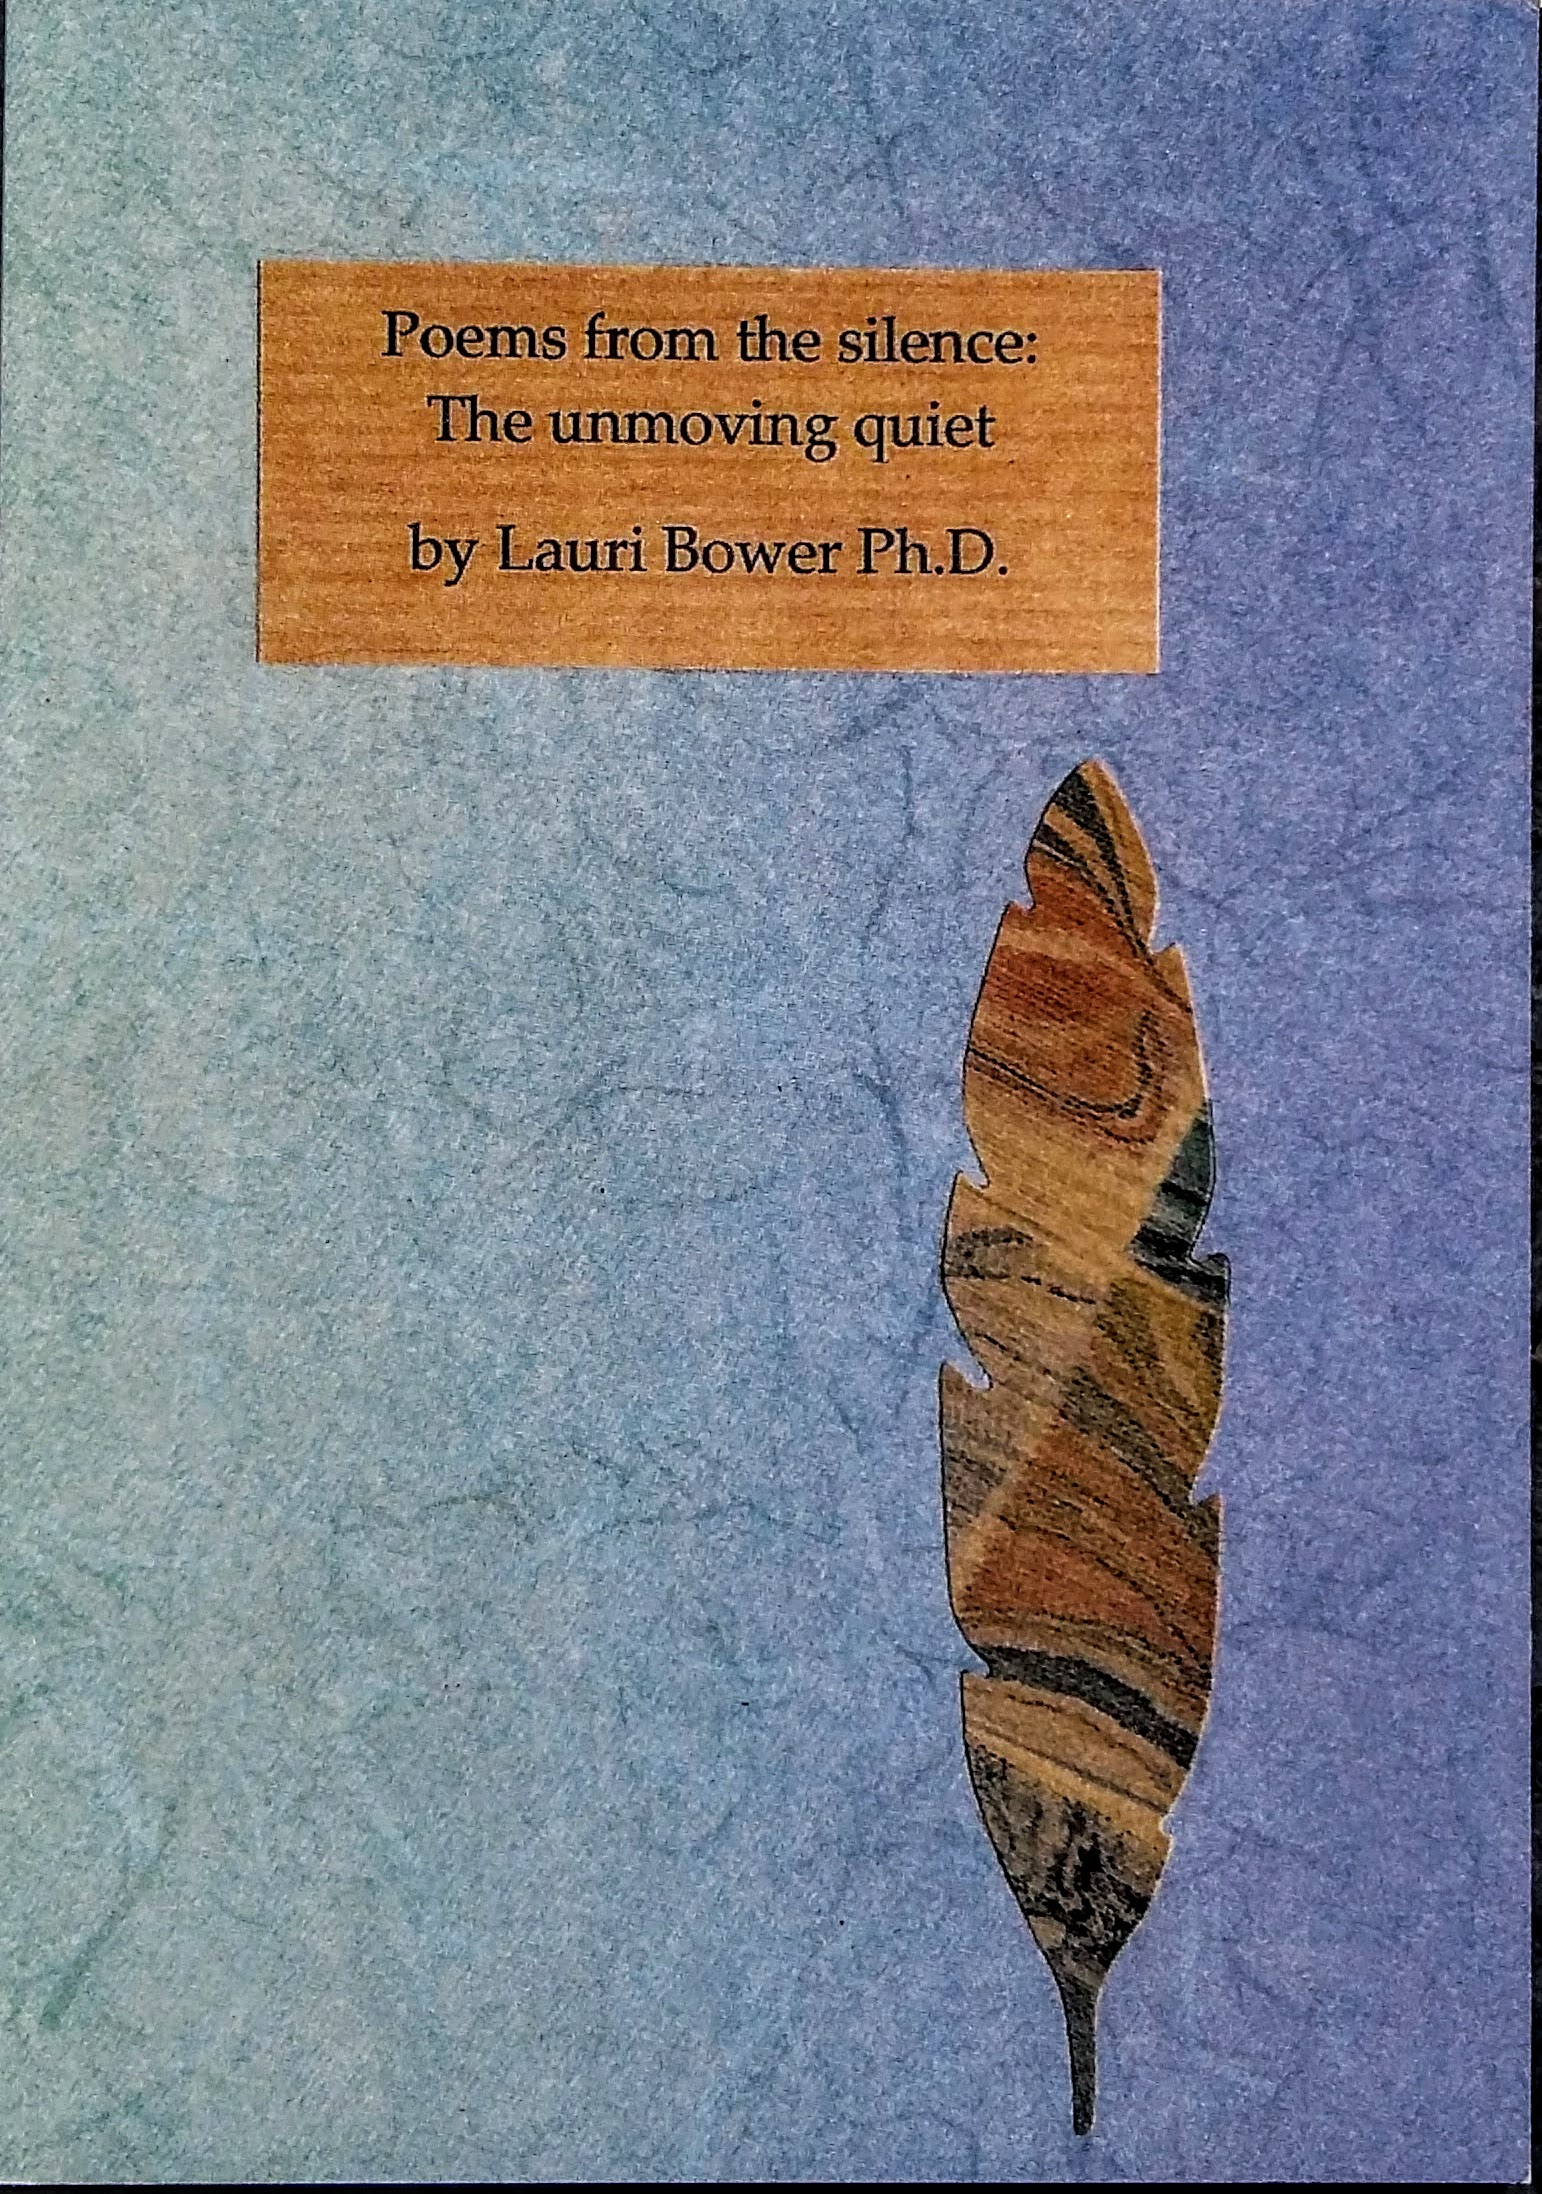 The unmoving quiet,  23 poems - £4 plus p&p